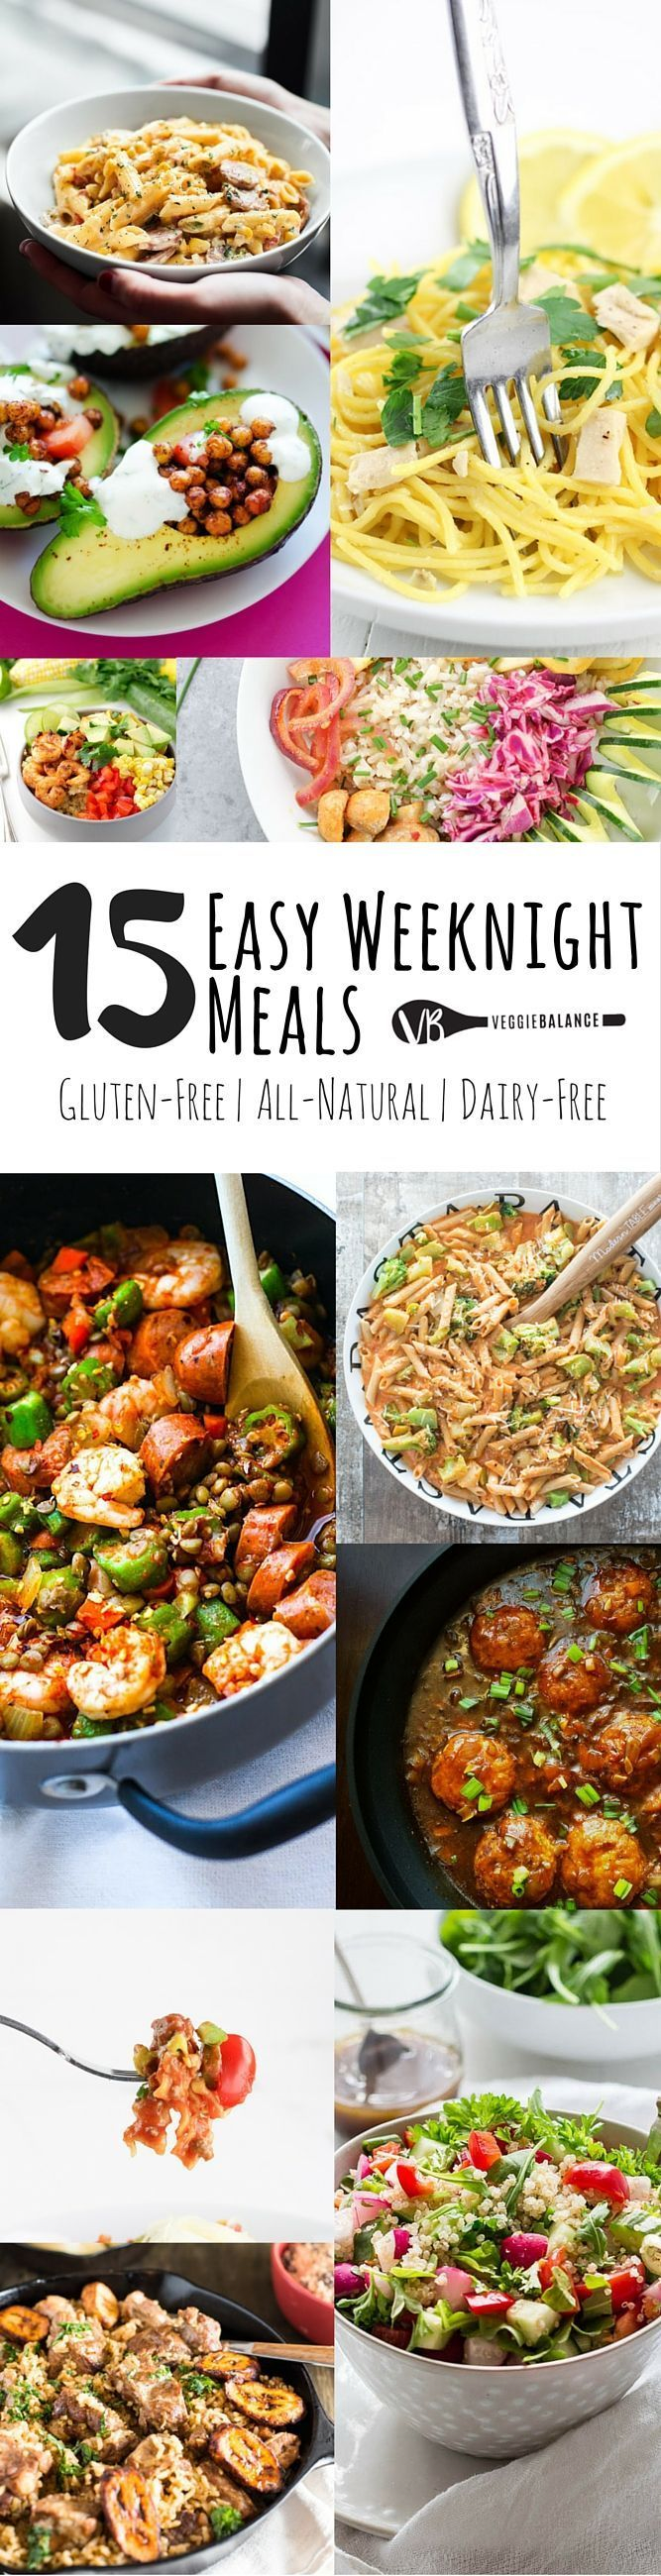 15 Easy Weeknight Meals recipe compilation to make those weeknights dinner that much easier to get through. All gluten-free dinners, some dairy-free and vegan, but no doubt, every single dish is out of this world easy and delicious.